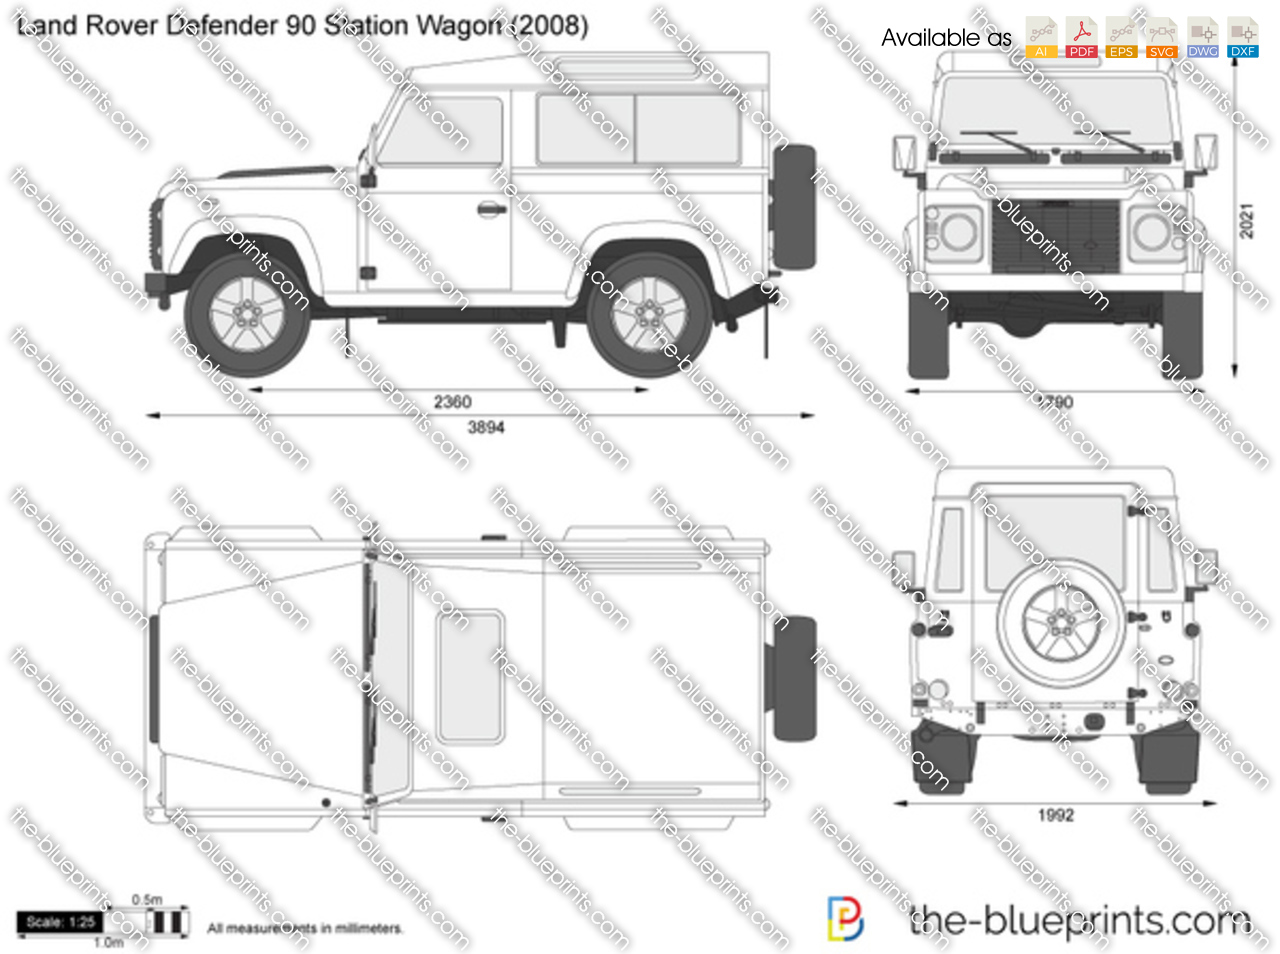 Land Rover Defender 90 Station Wagon 2012